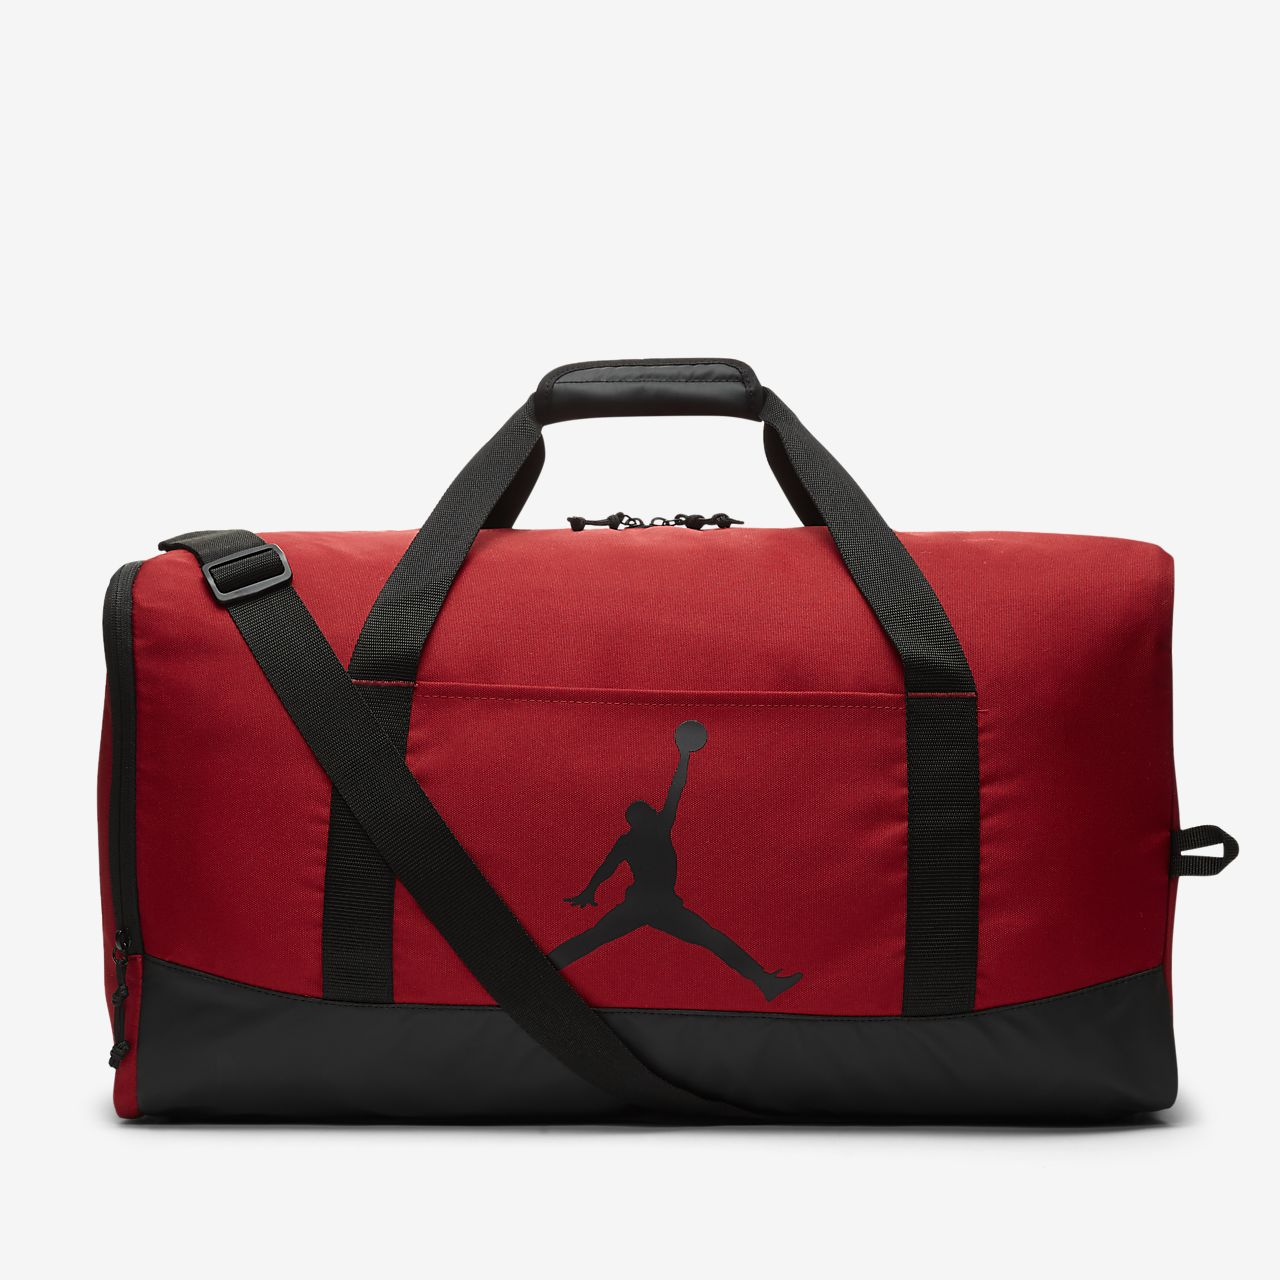 7eac37df034879 Low Resolution Jordan Jumpman Duffel Bag Jordan Jumpman Duffel Bag